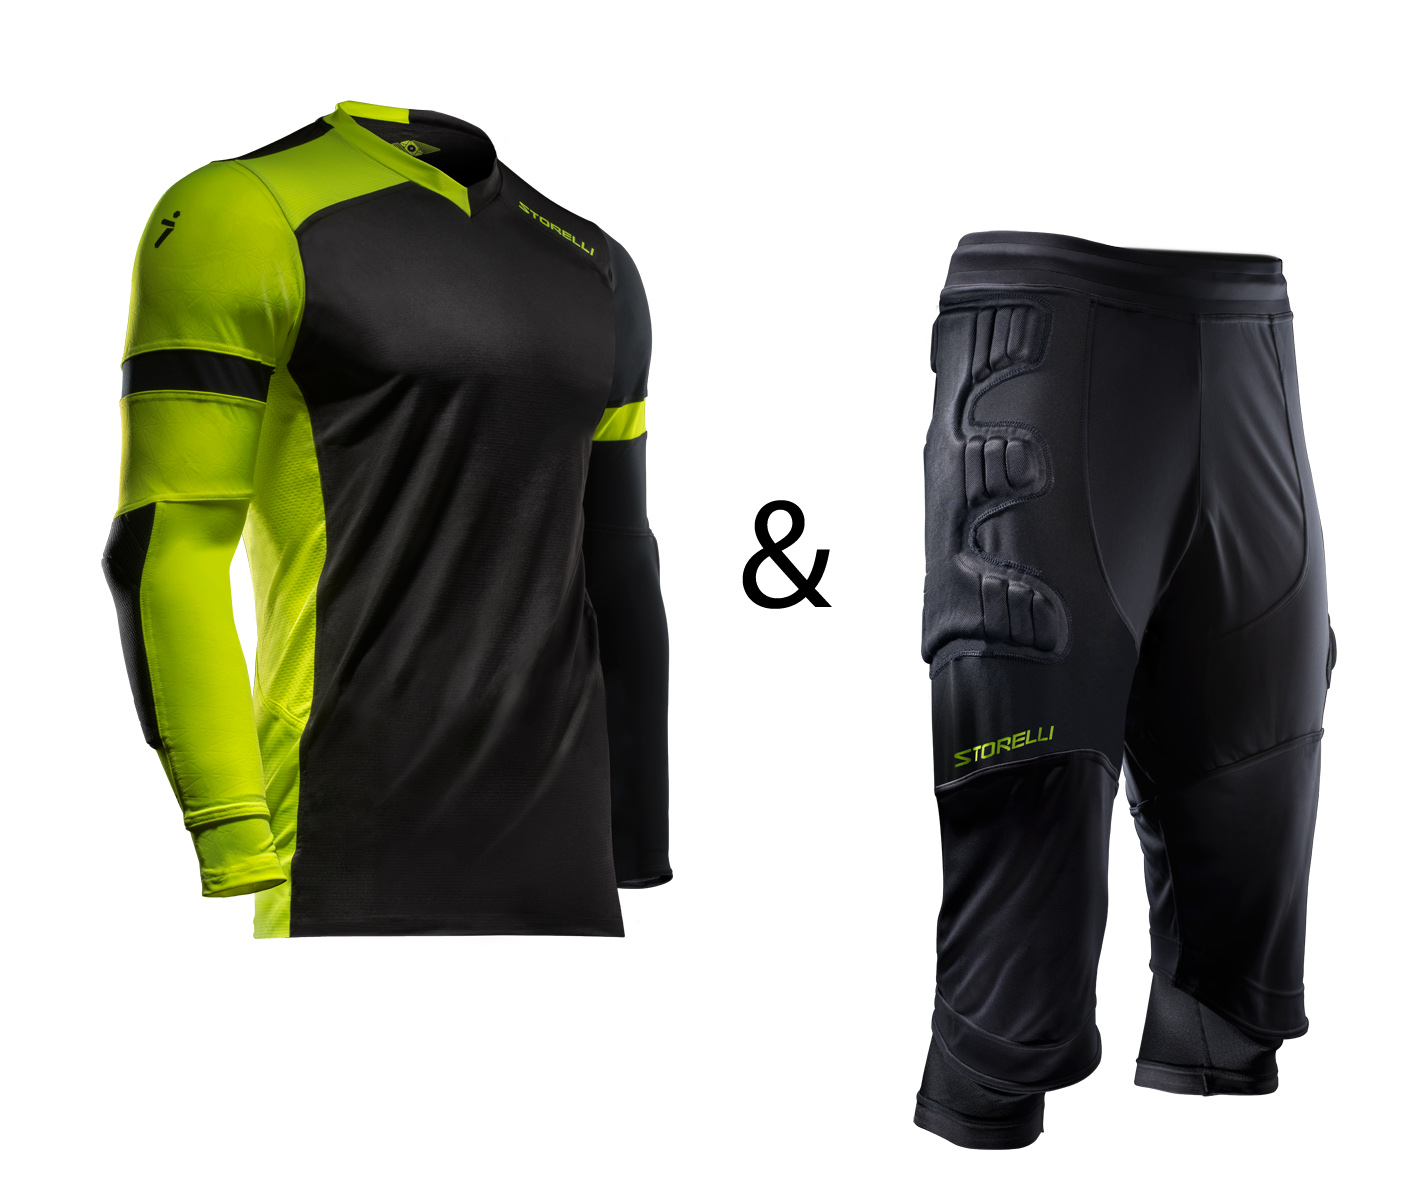 futsal goalkeeping gear